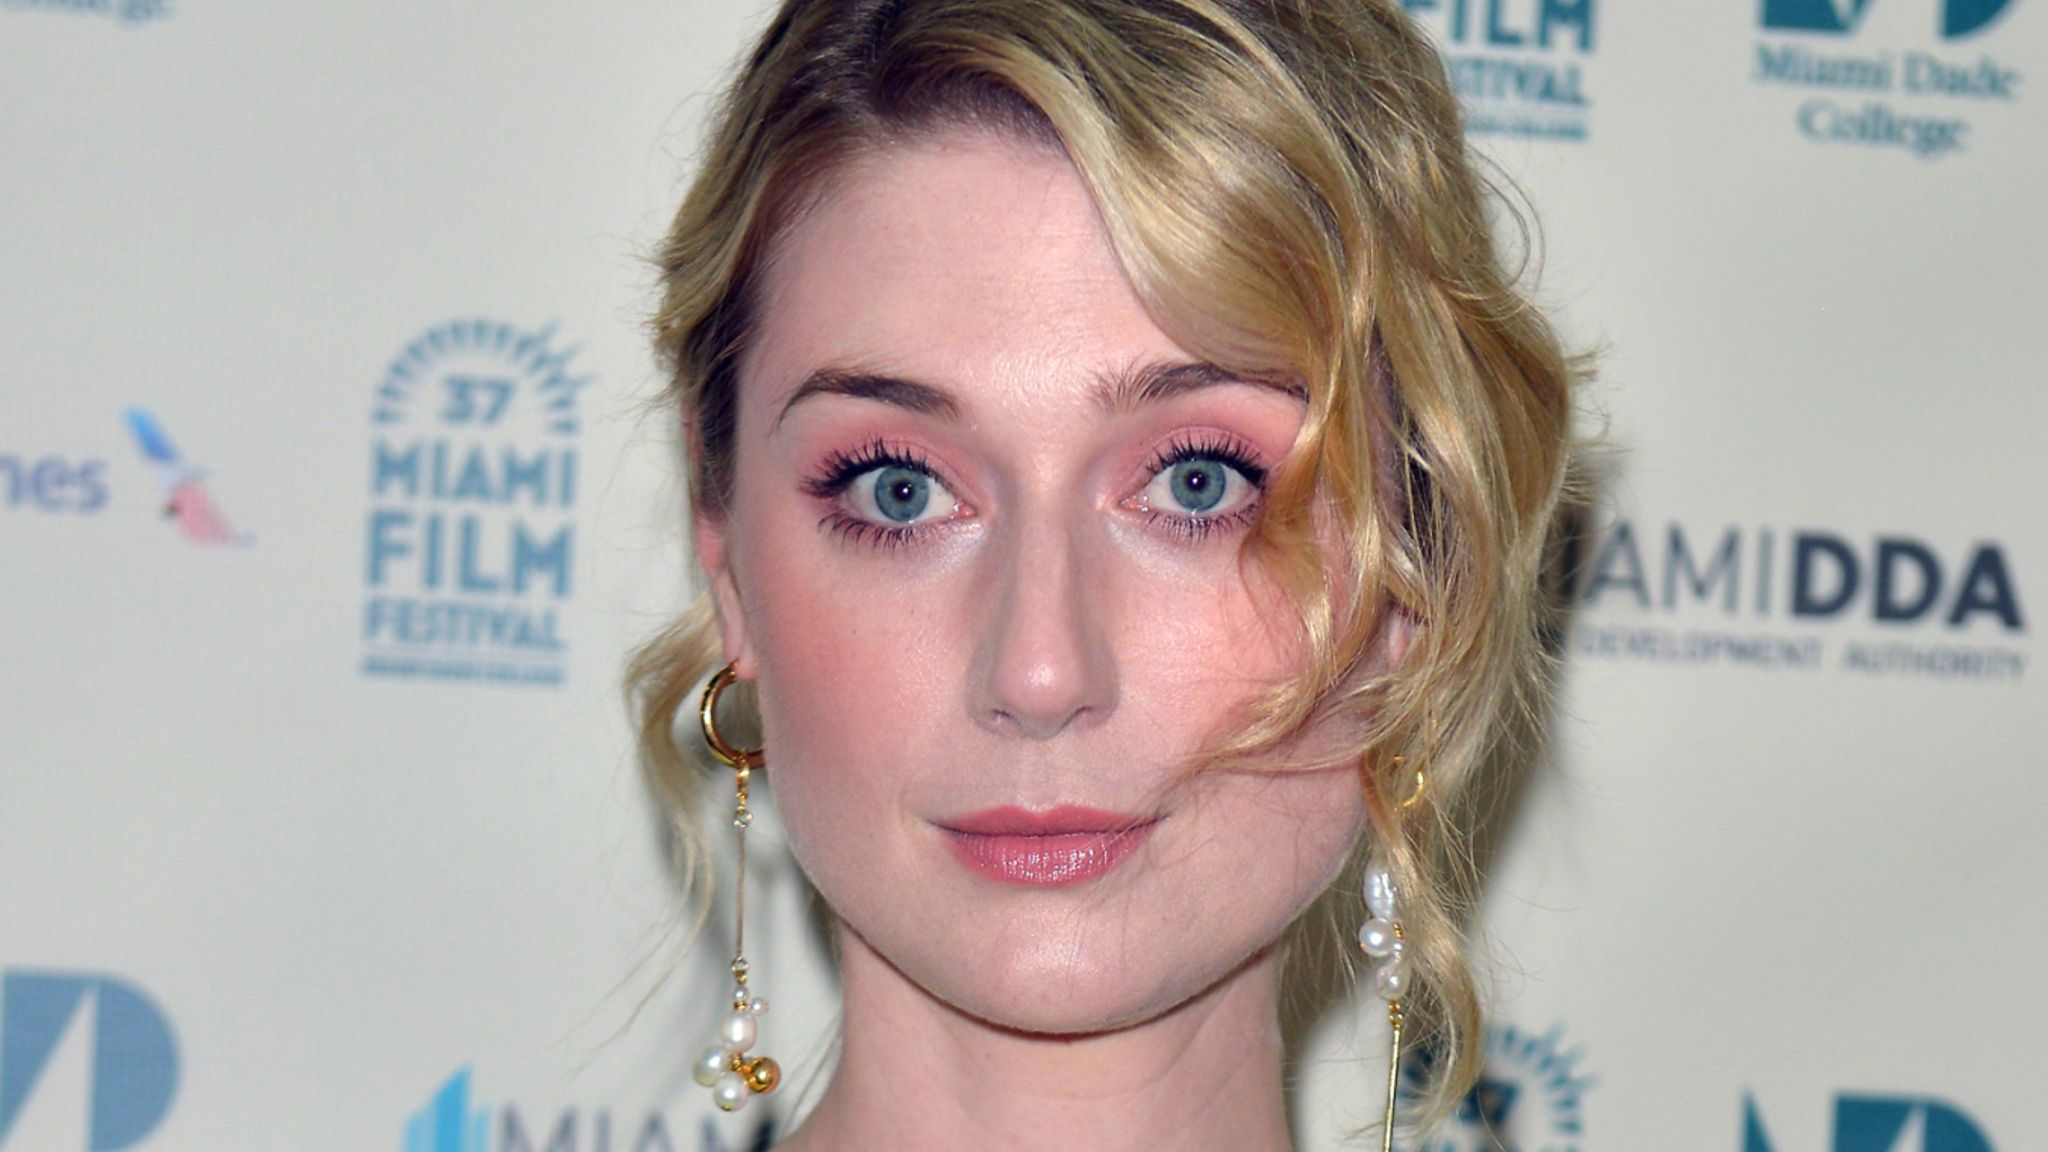 Elizabeth Debicki will play Princess Diana in the final series of The Crown